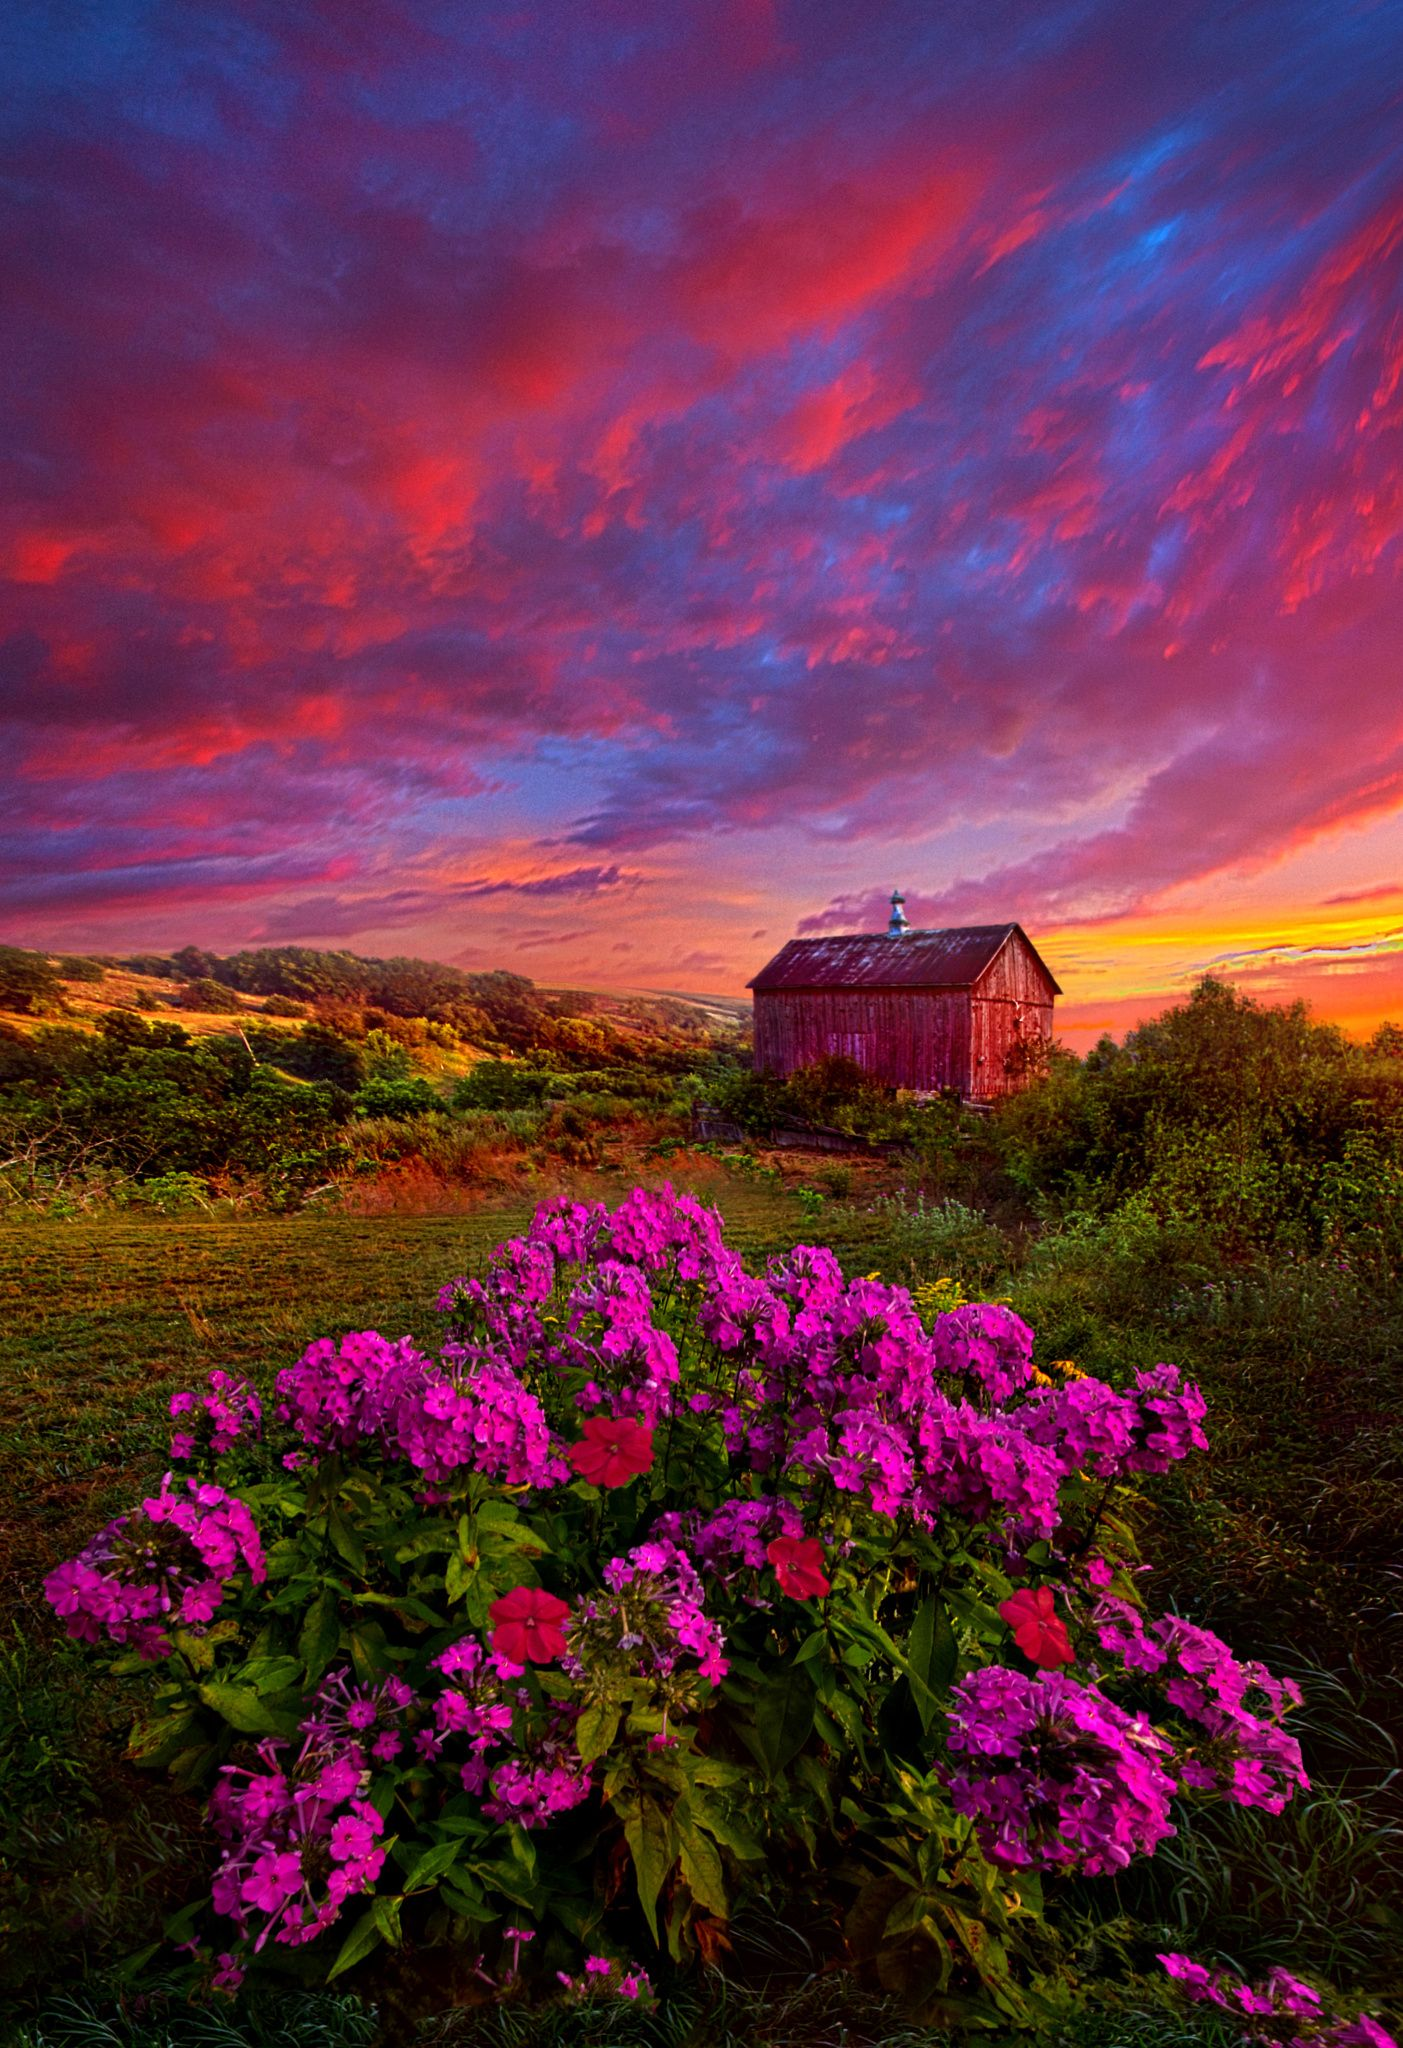 Beautiful Nature Landscape Photography: Sunrise Flower Meadow Barn